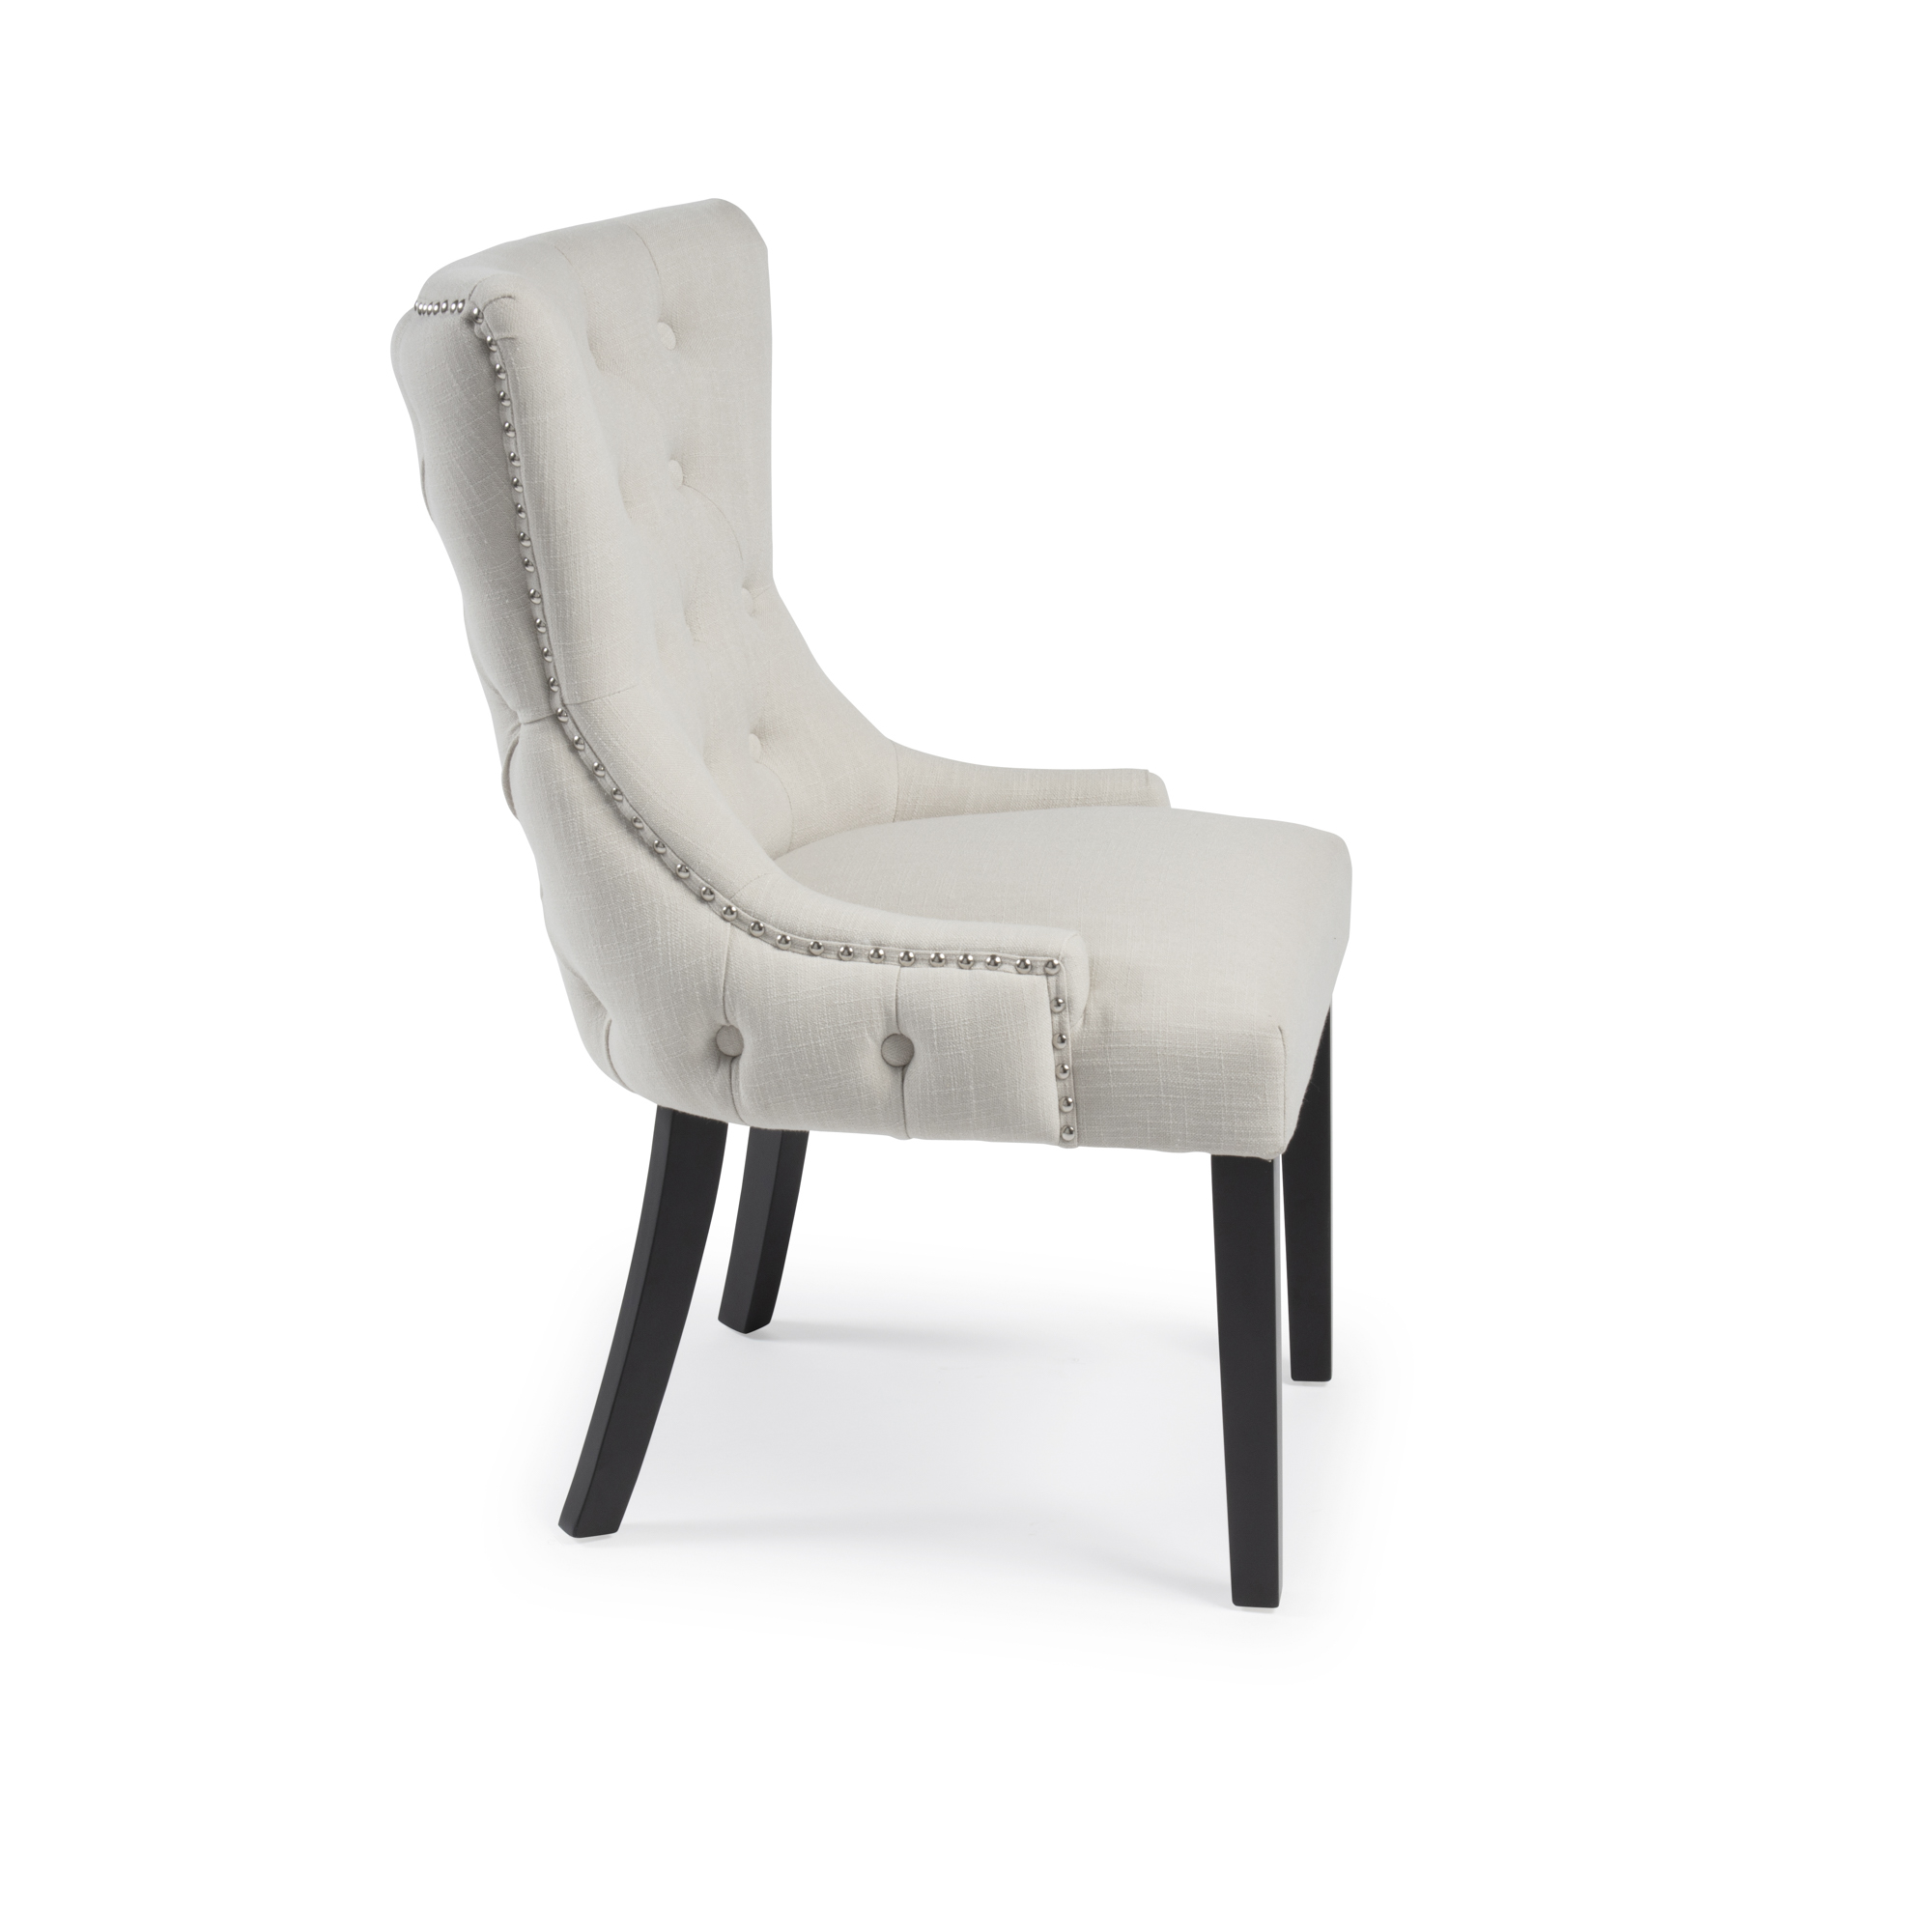 Knightsbridge Natural Linen Double Buttoned Dining Chair